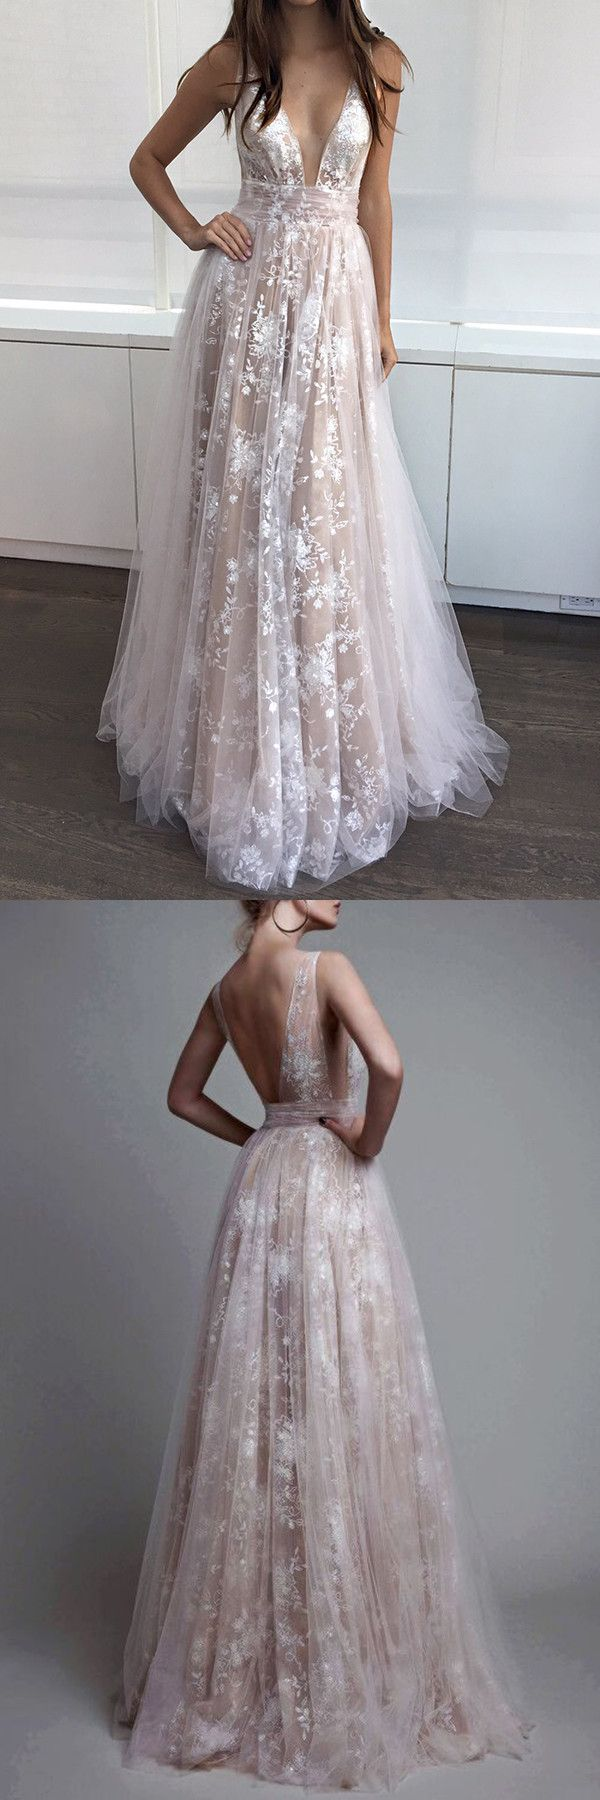 champagne long prom party dresses , deep v-neck lace prom party gowns, cheap champagne evening gowns, vestidos, 2017 prom party dresses